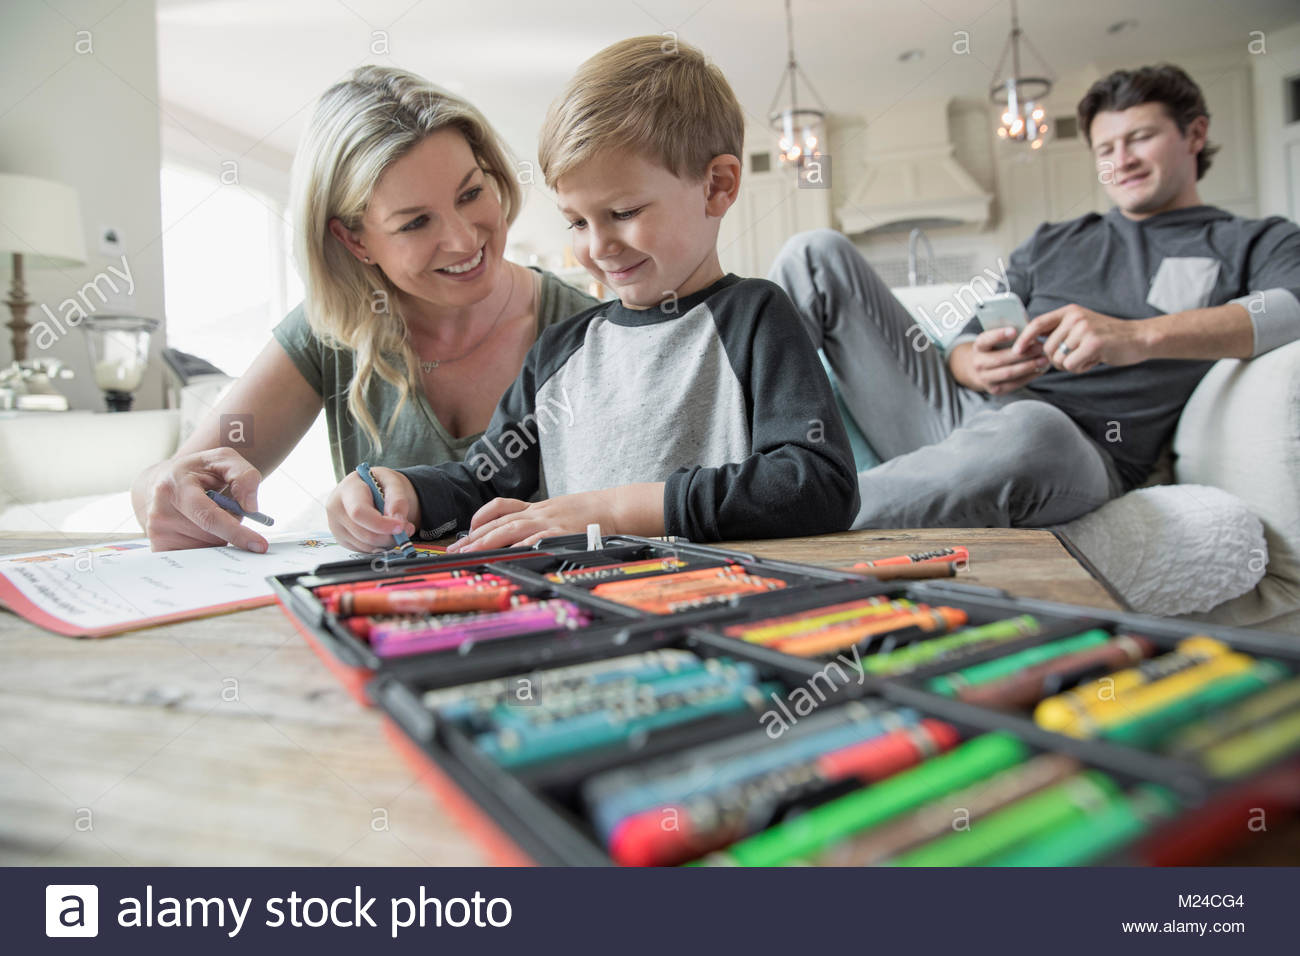 Mother and son coloring in living room - Stock Image